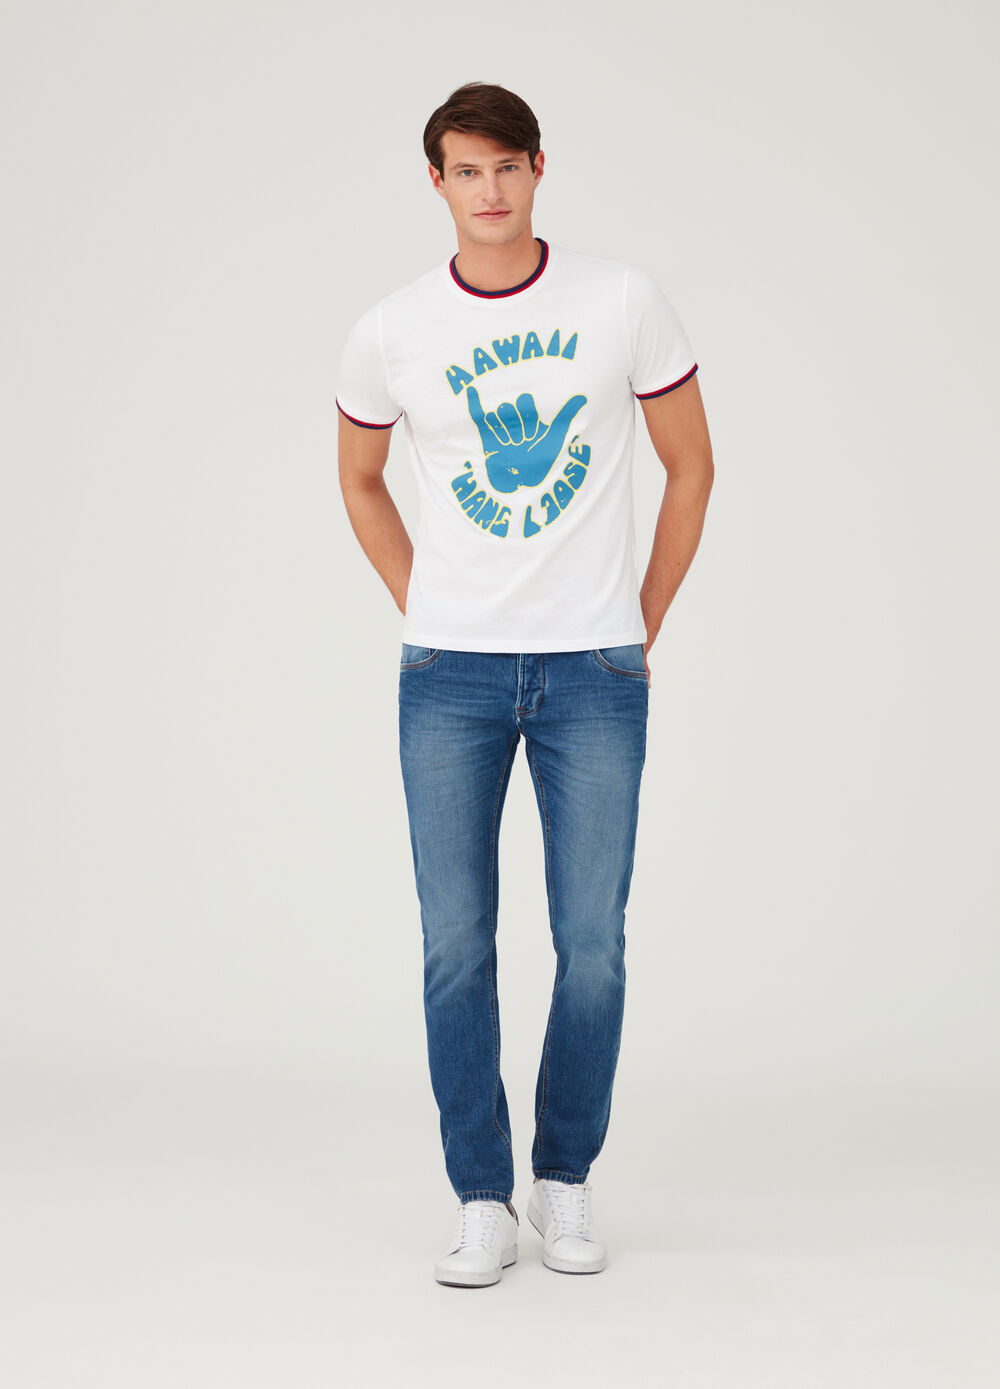 T-shirt jersey cotone stampa lucida